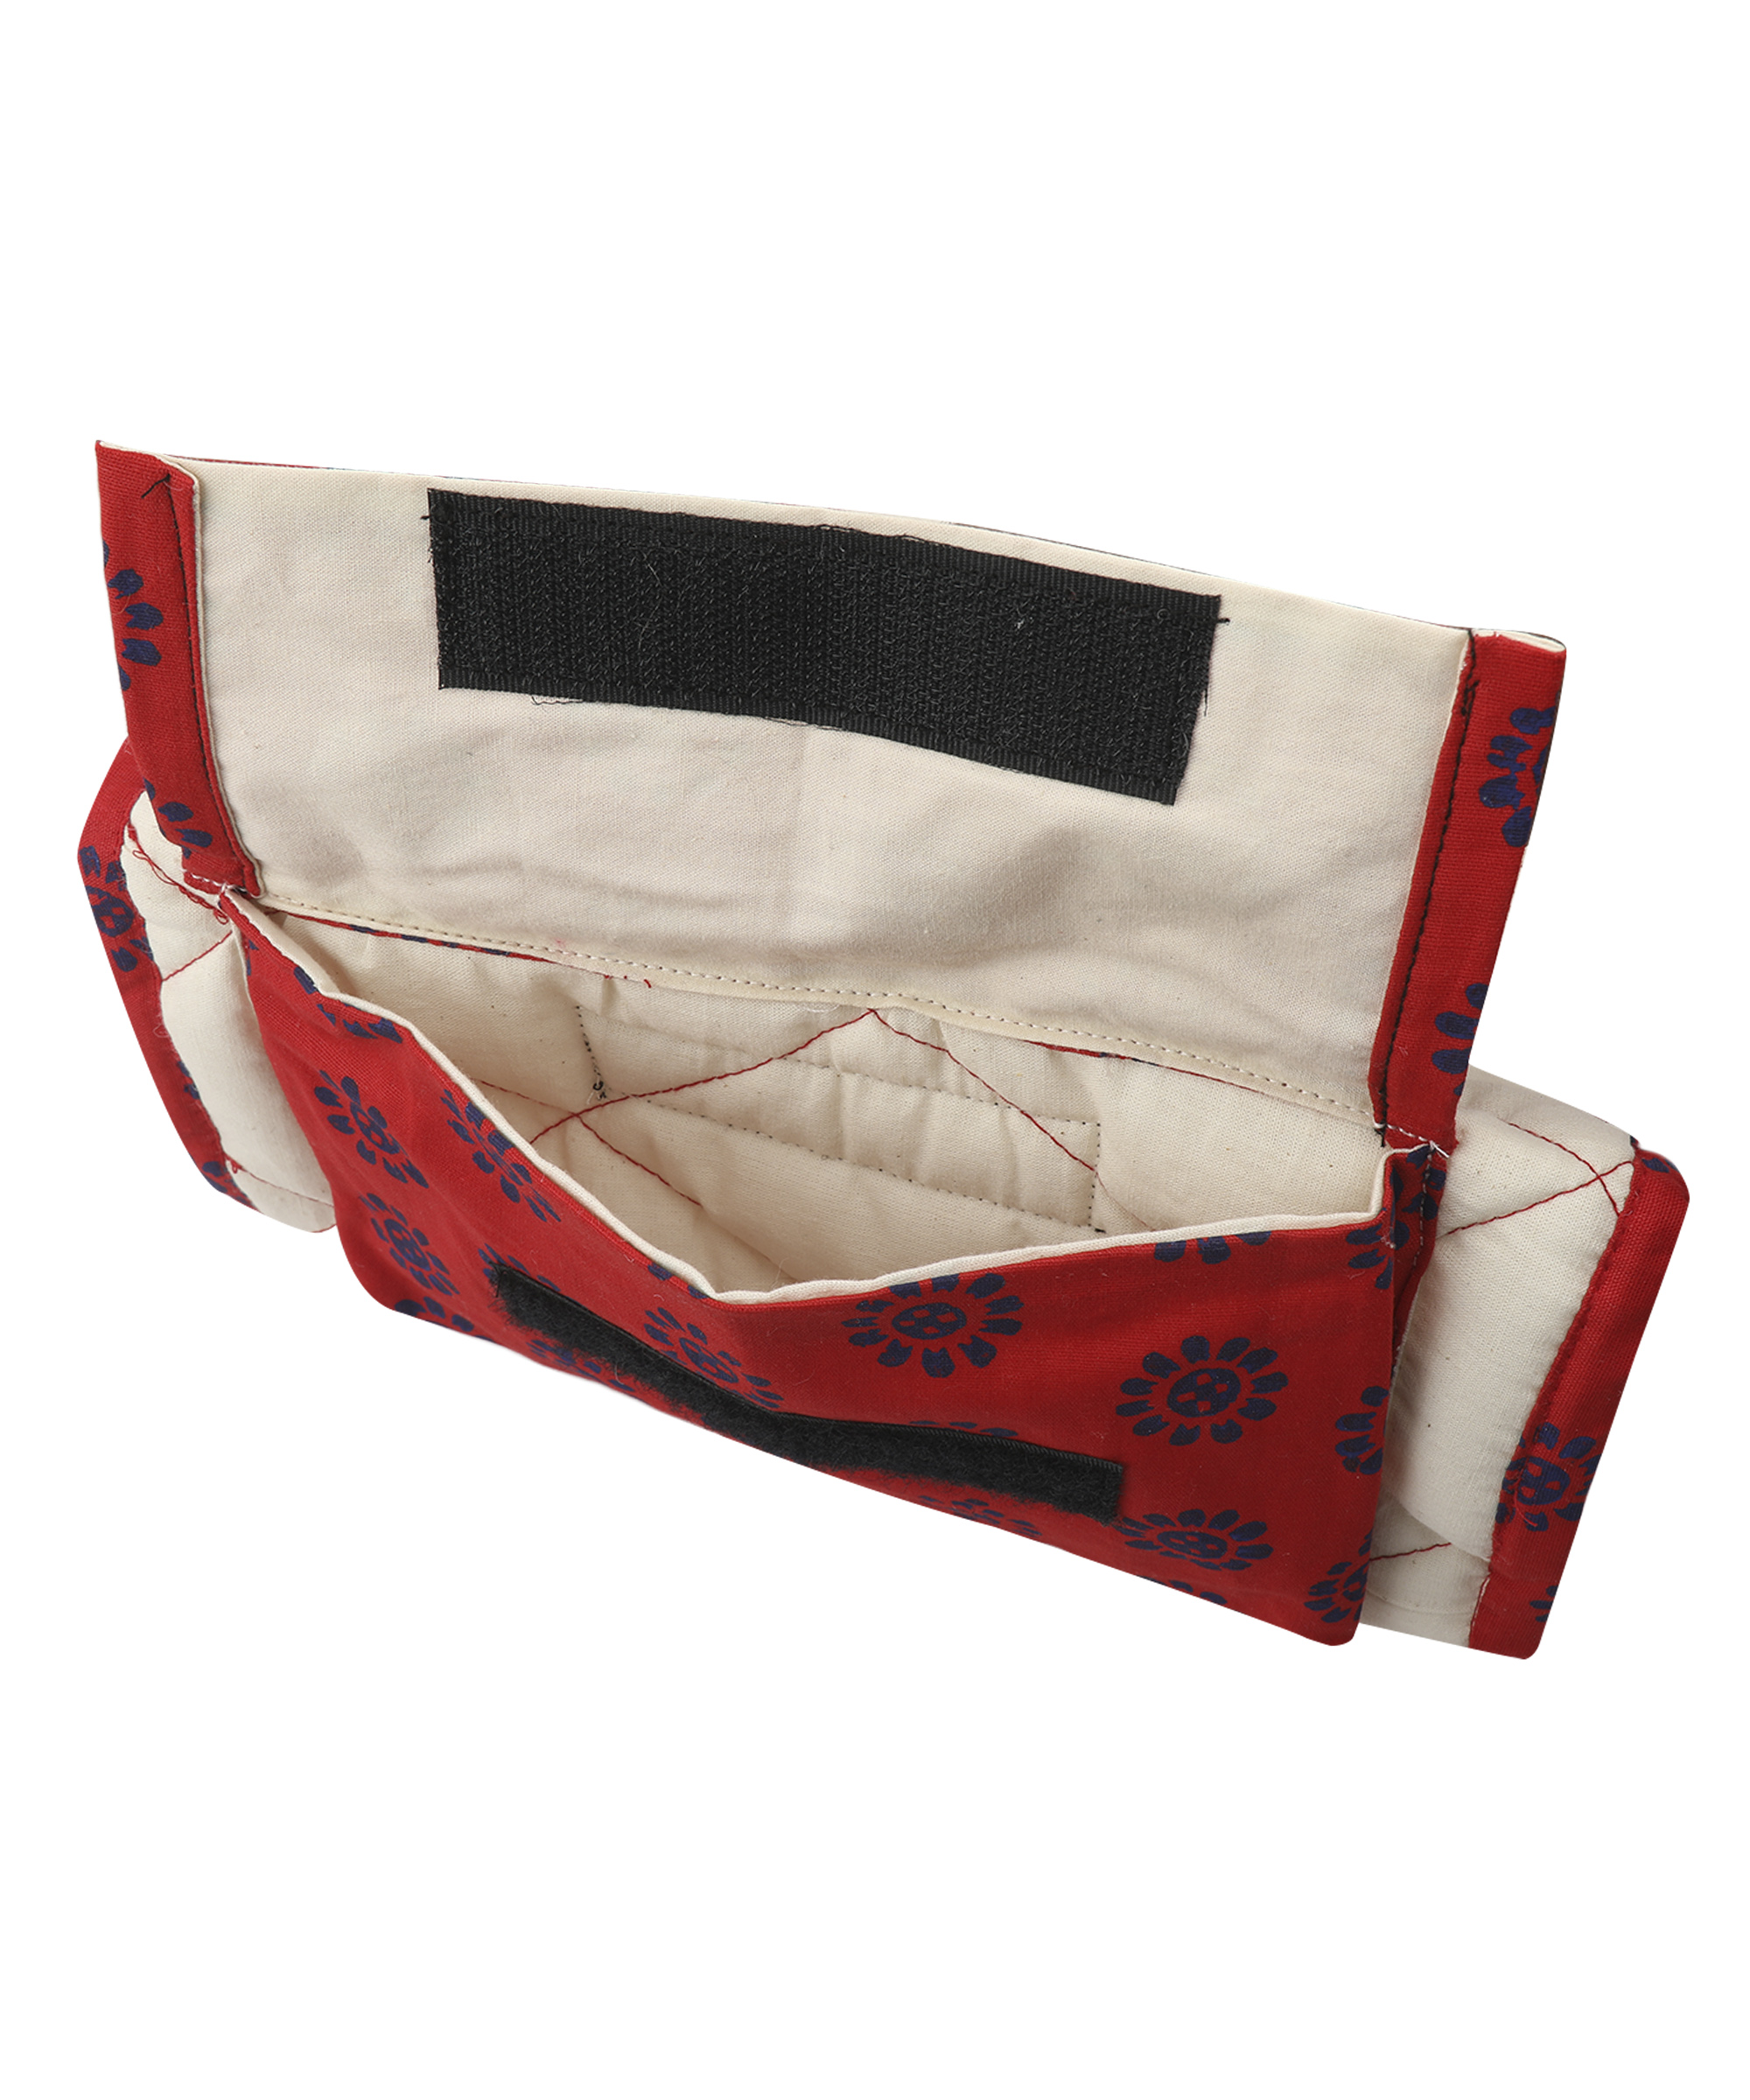 Patchwork Block Printed Wire Organiser (Red) Slider Thumbnail 2/2